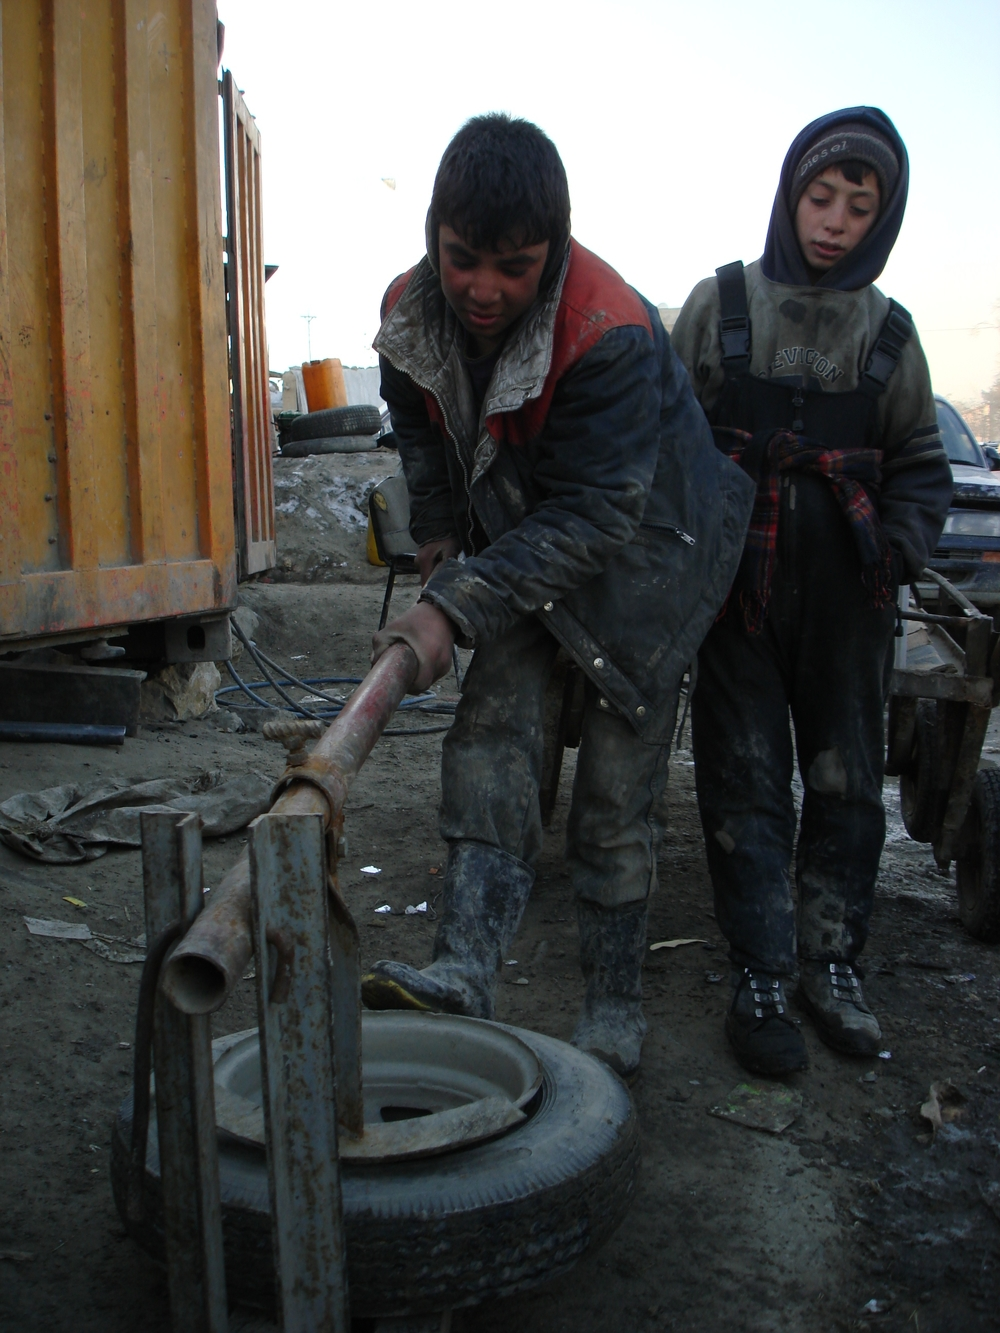 Sayed and his friend working in a tyre-repair shop in Kabul city